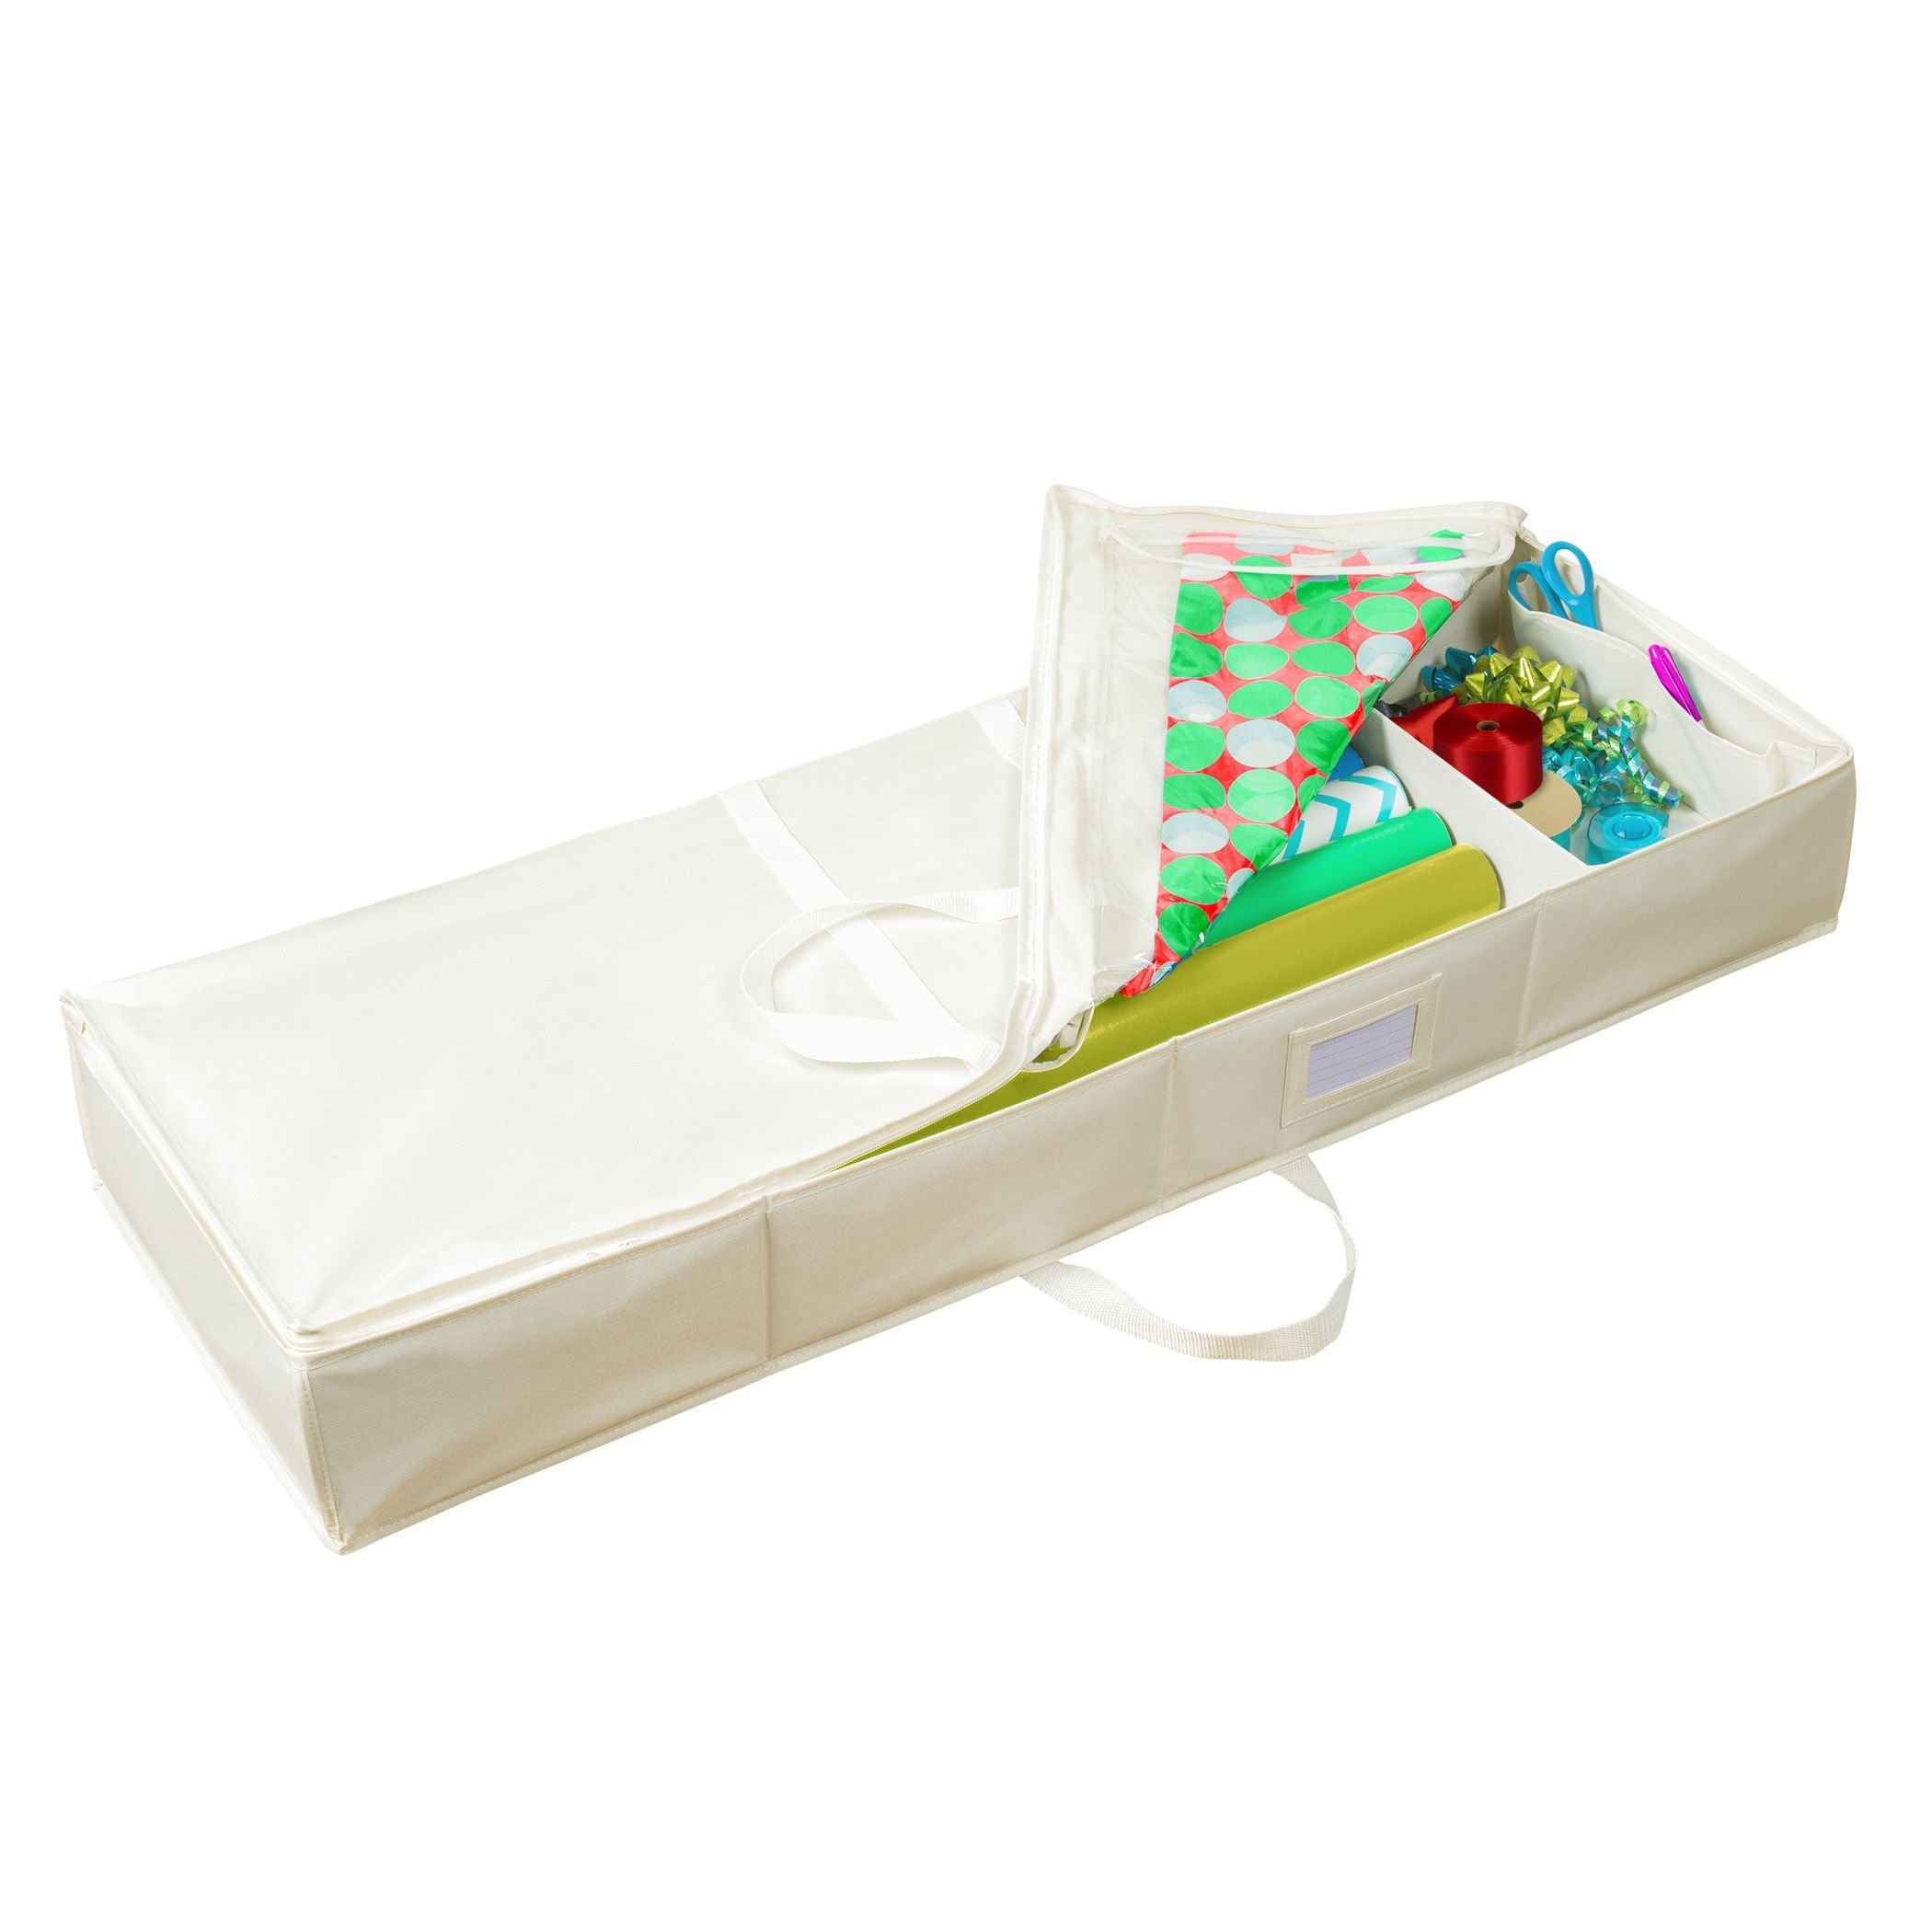 HomeCrate Underbed Wrapping Paper and Bow Organizer with with Accessories Compartments, Beige by HomeCrate